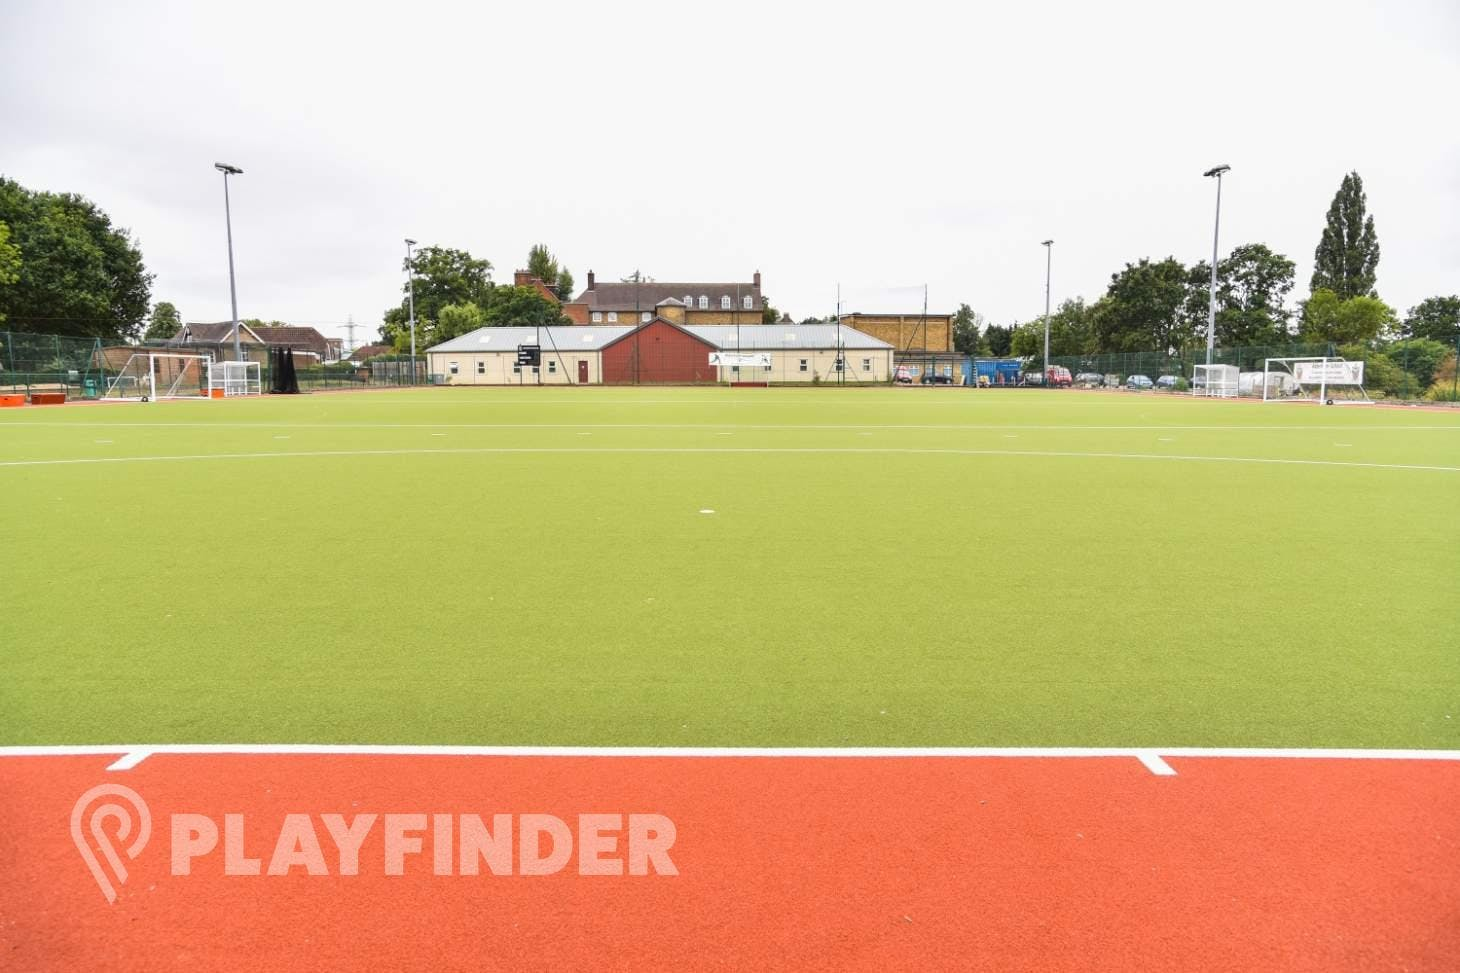 Aldenham School Sports Centre 9 a side | Astroturf football pitch